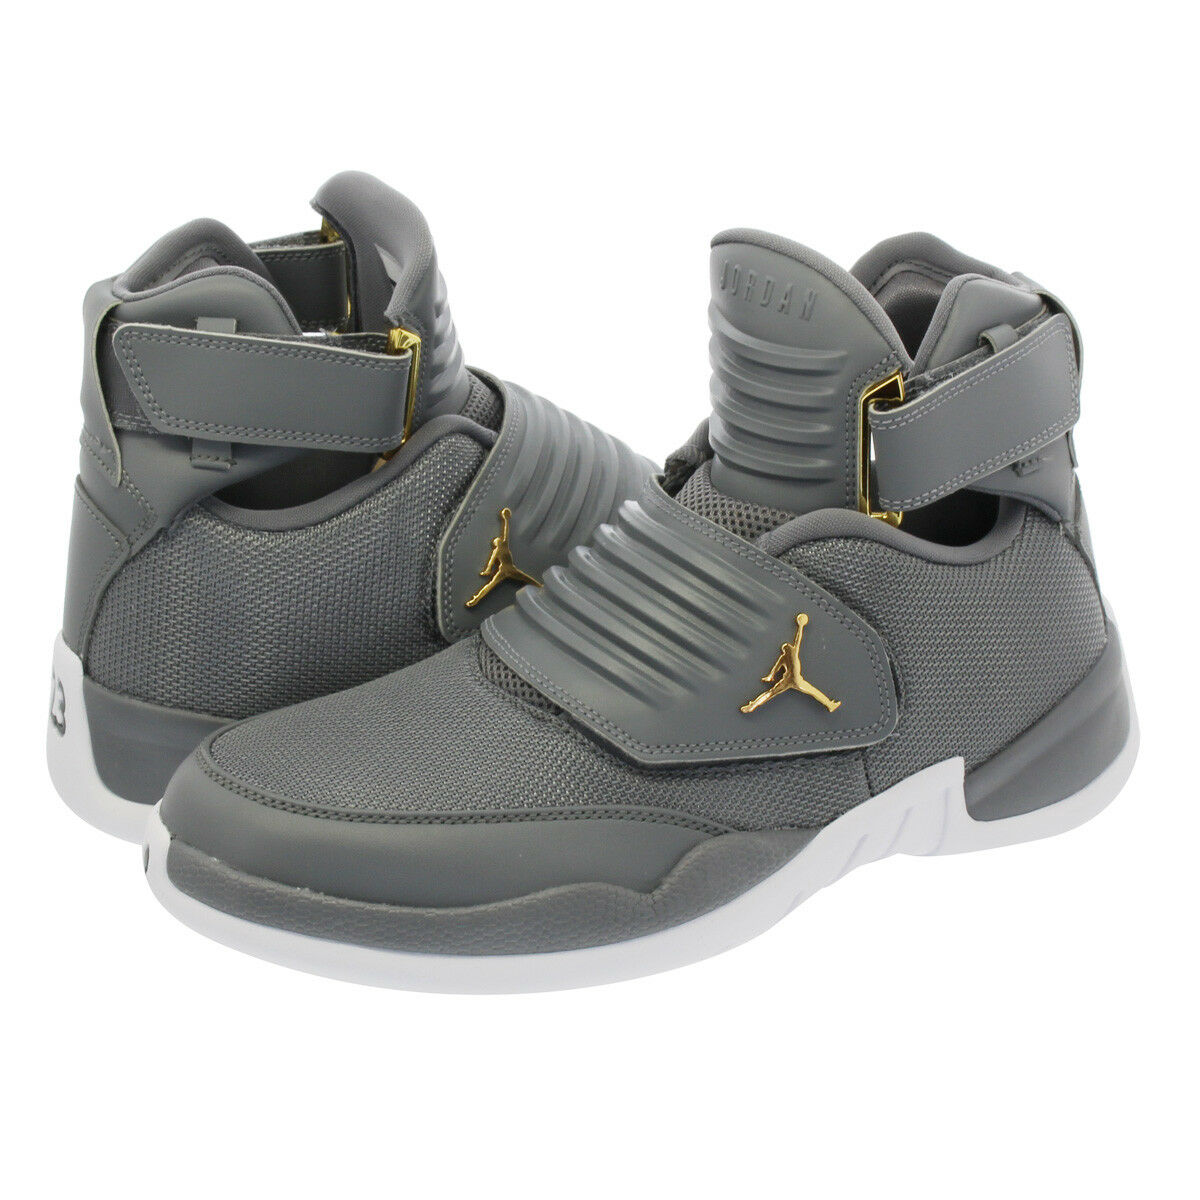 SALE AIR JORDAN GENERATION 23 COOL GREY WHITE GOLD SZ 8-14 NEW AA1294 004